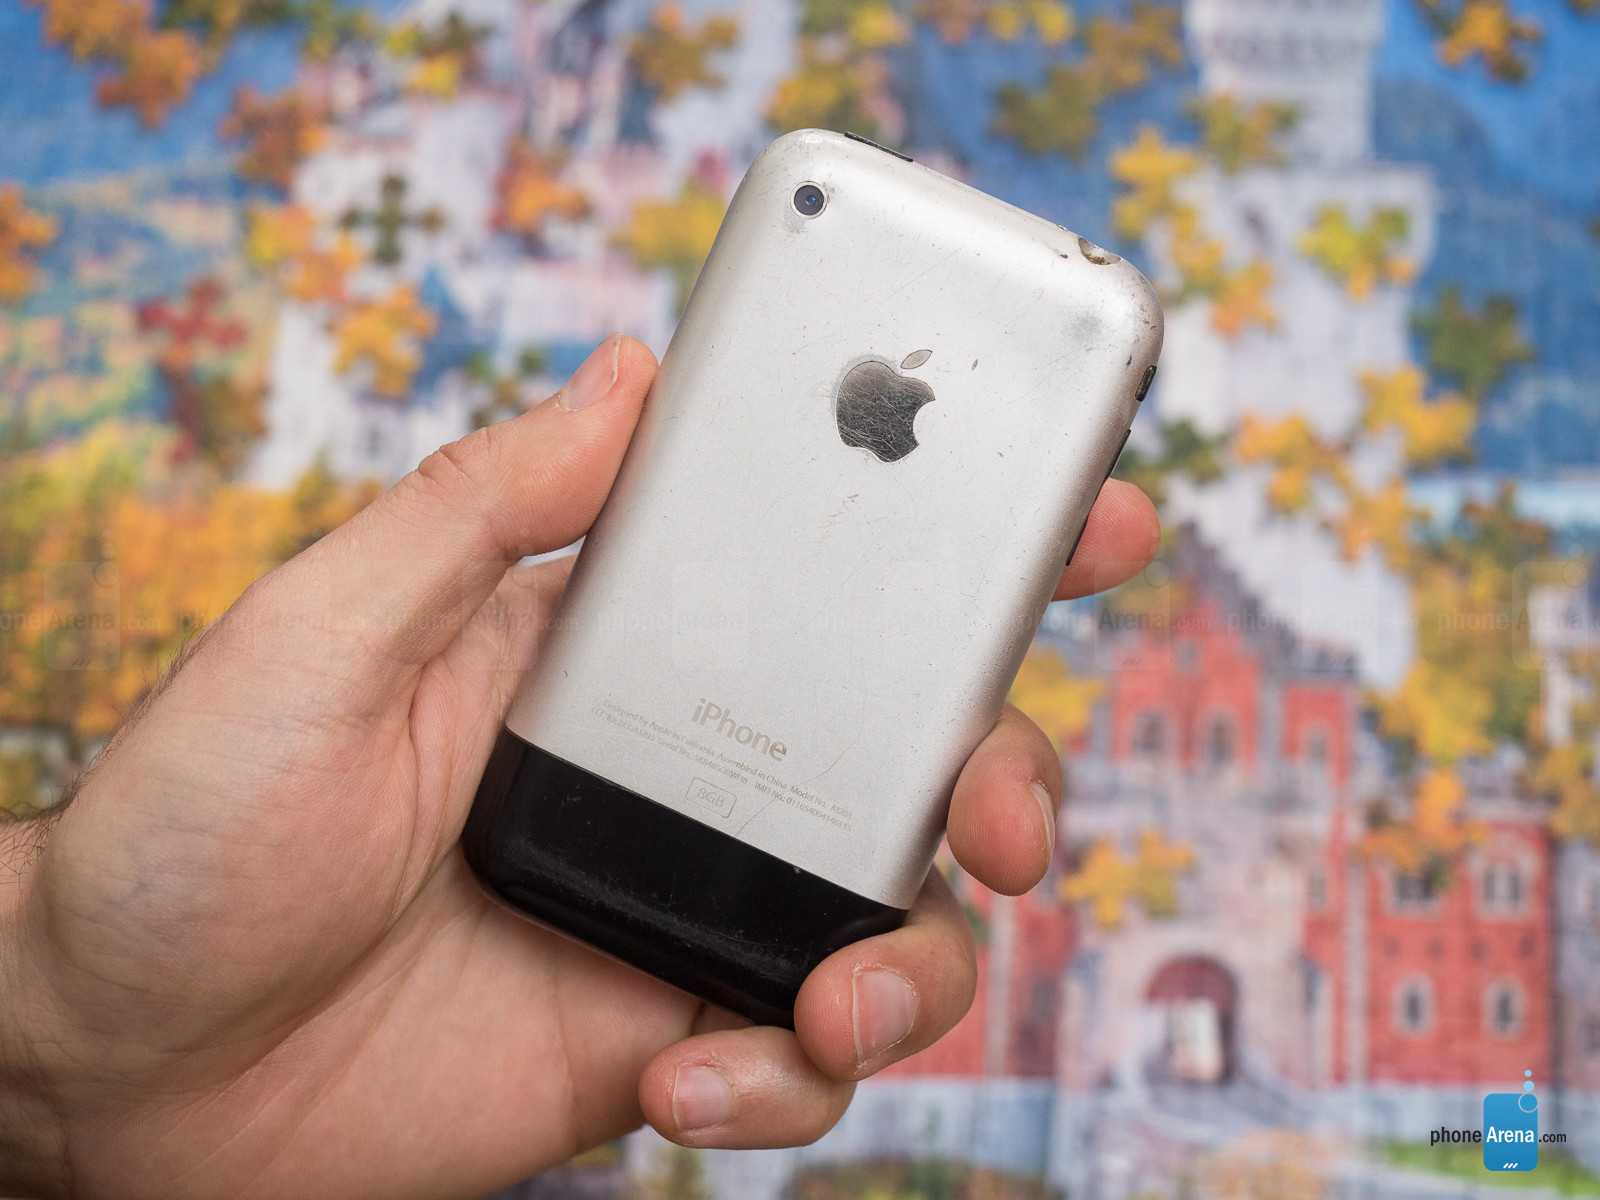 1498804041_bruised-and-battered-but-not-broken-10-years-on-my-iphone-2g-still-works-2.jpg